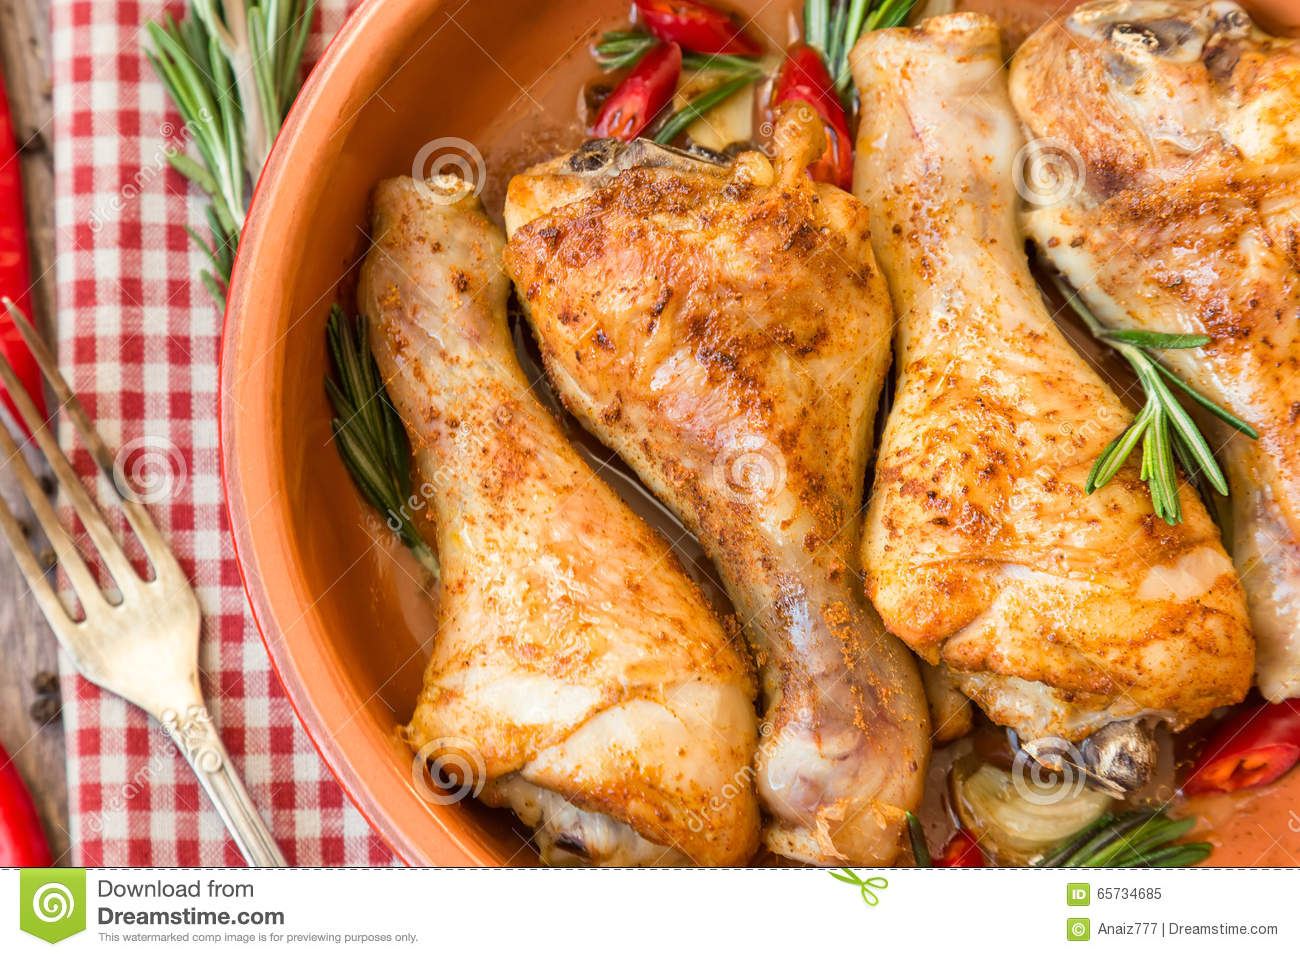 rosemary garlic chicken legs